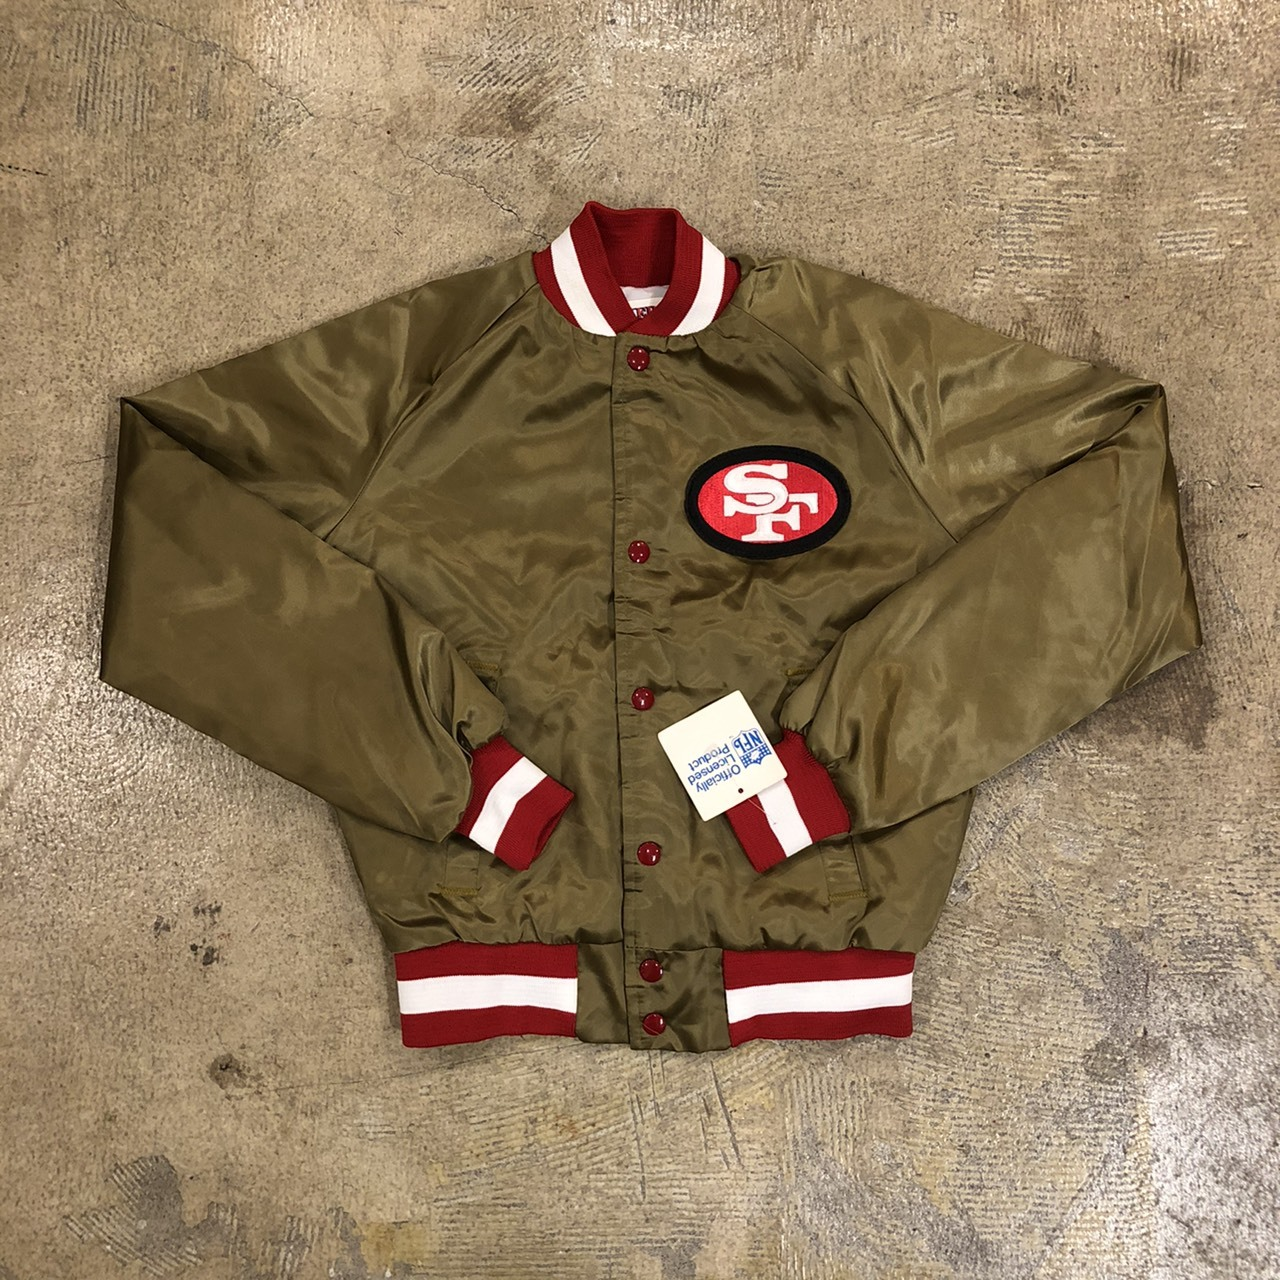 80's LOCKER LINE #49ers Stadium Jacket